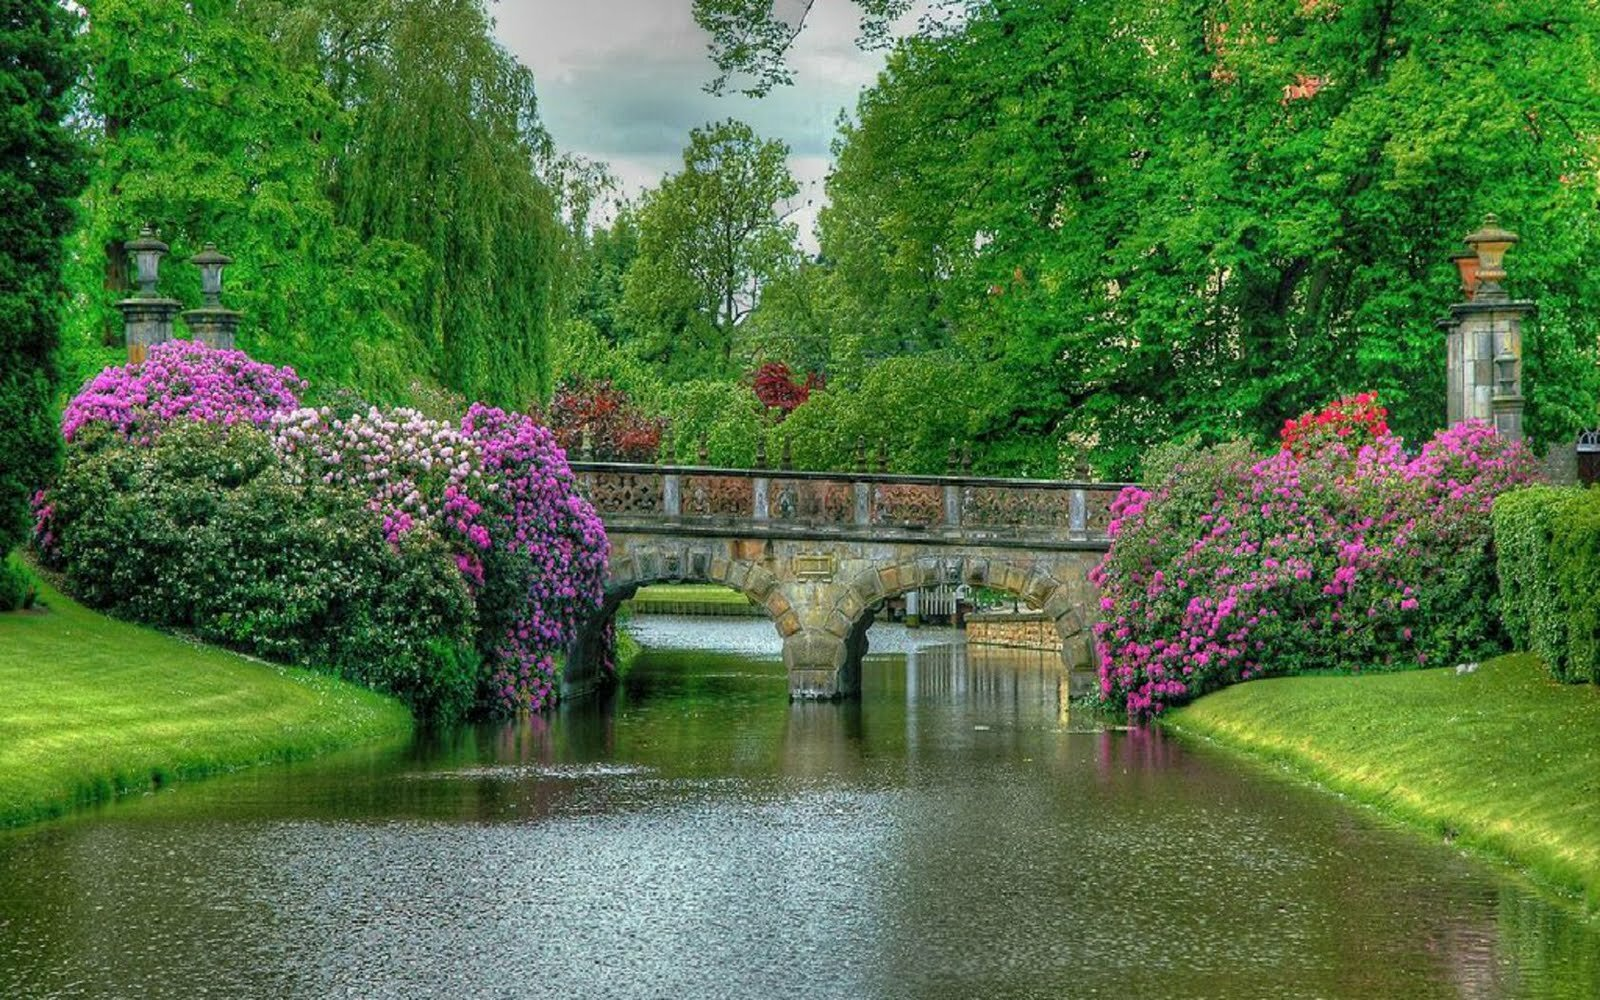 28 beautiful gardens like dream mostbeautifulthings for Beautiful garden pictures of the world